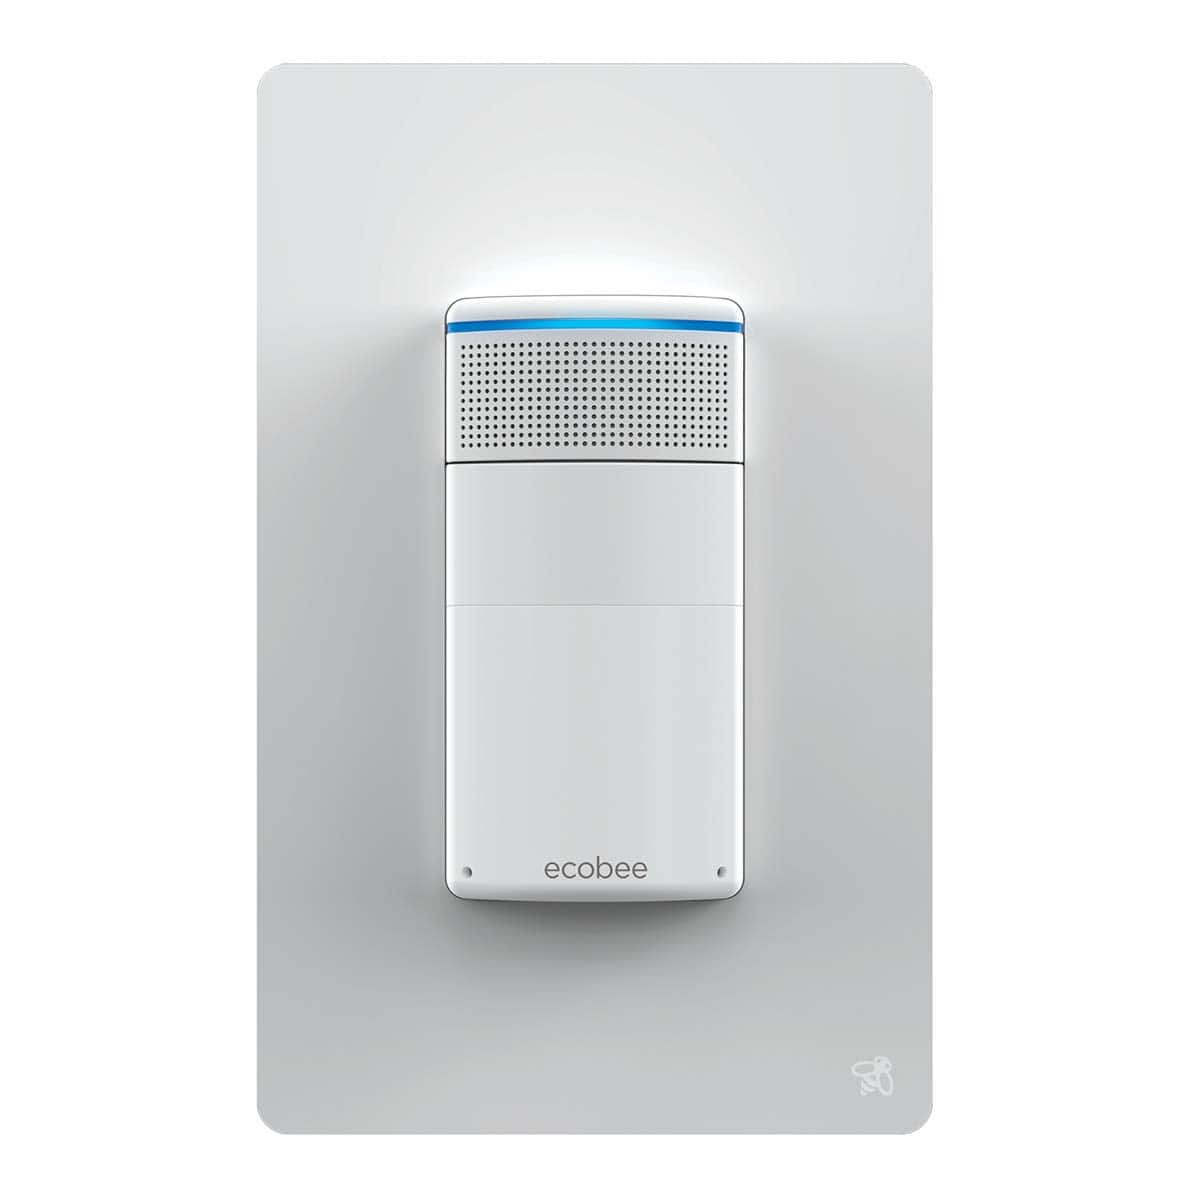 ecobee Switch+ Smart Light Switch with Alexa $45.28